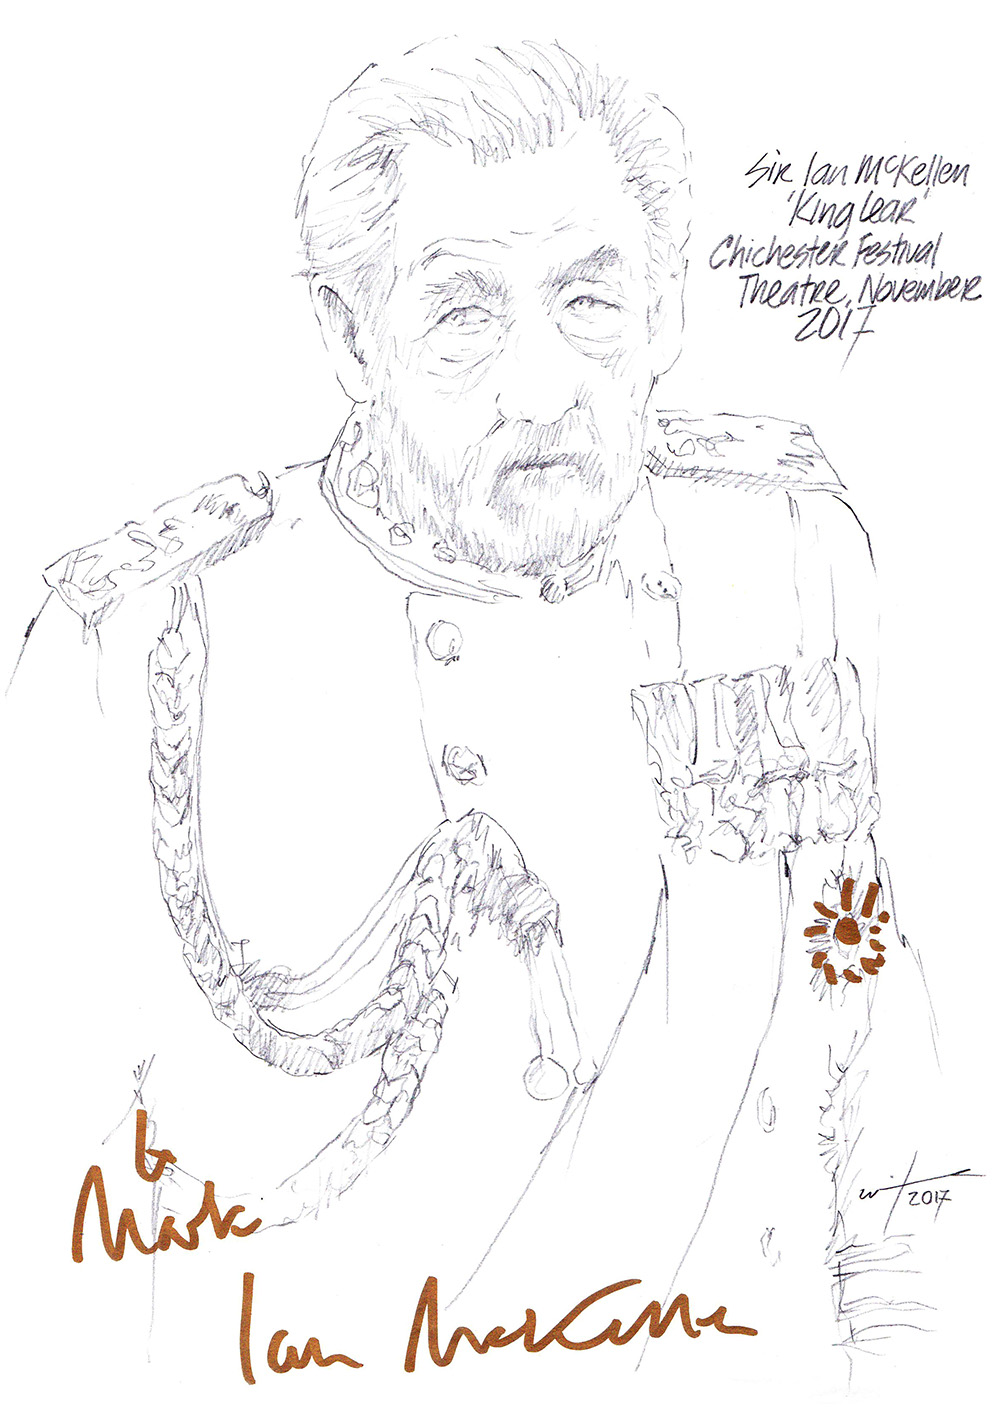 Autographed drawing of Sir Ian Mckellen as King Lear at the Chichester Festival Theatre